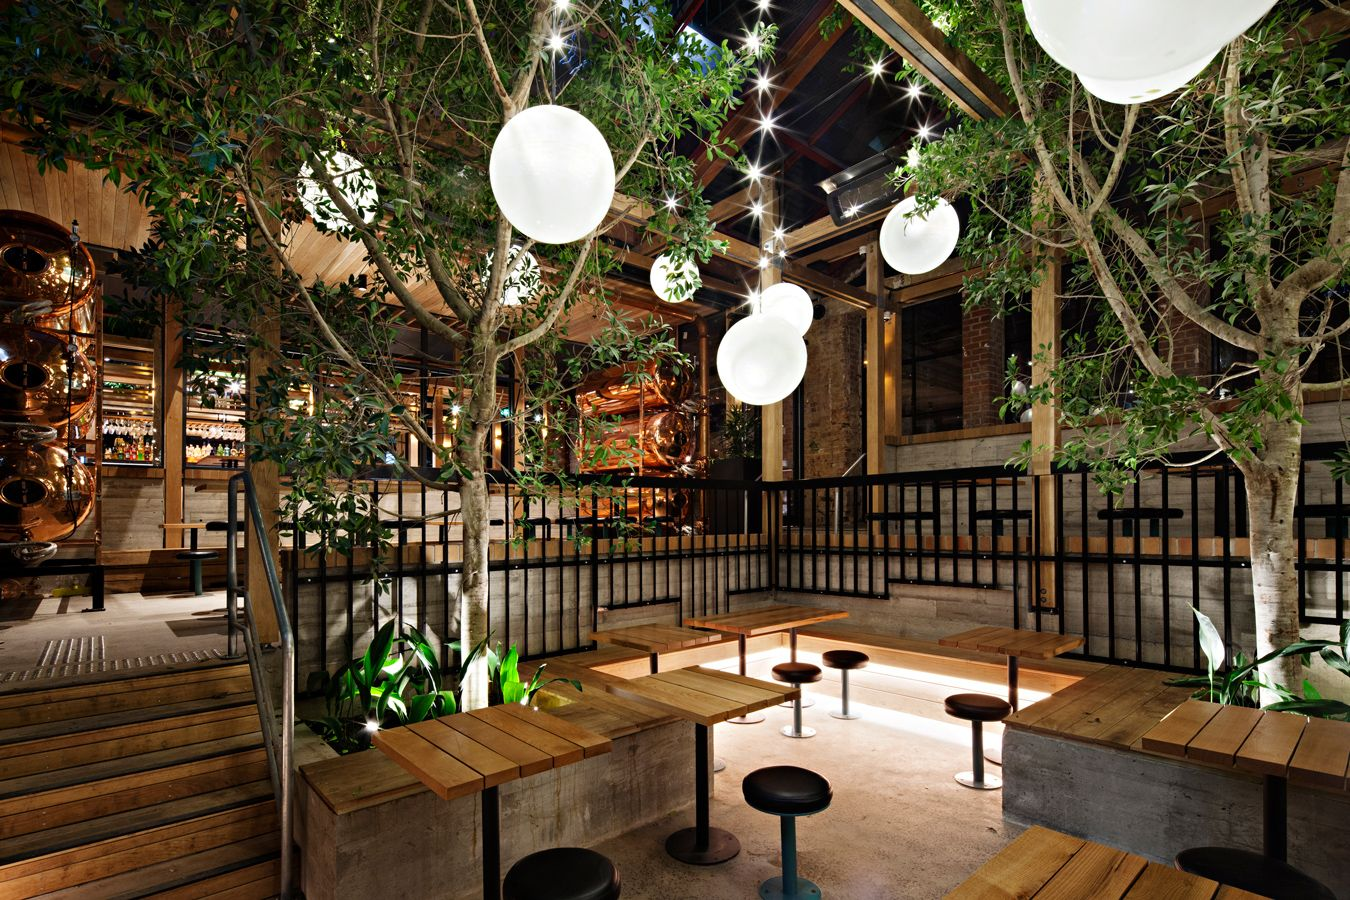 garden state hotel techne 2015 - Eclectic Hotel 2015